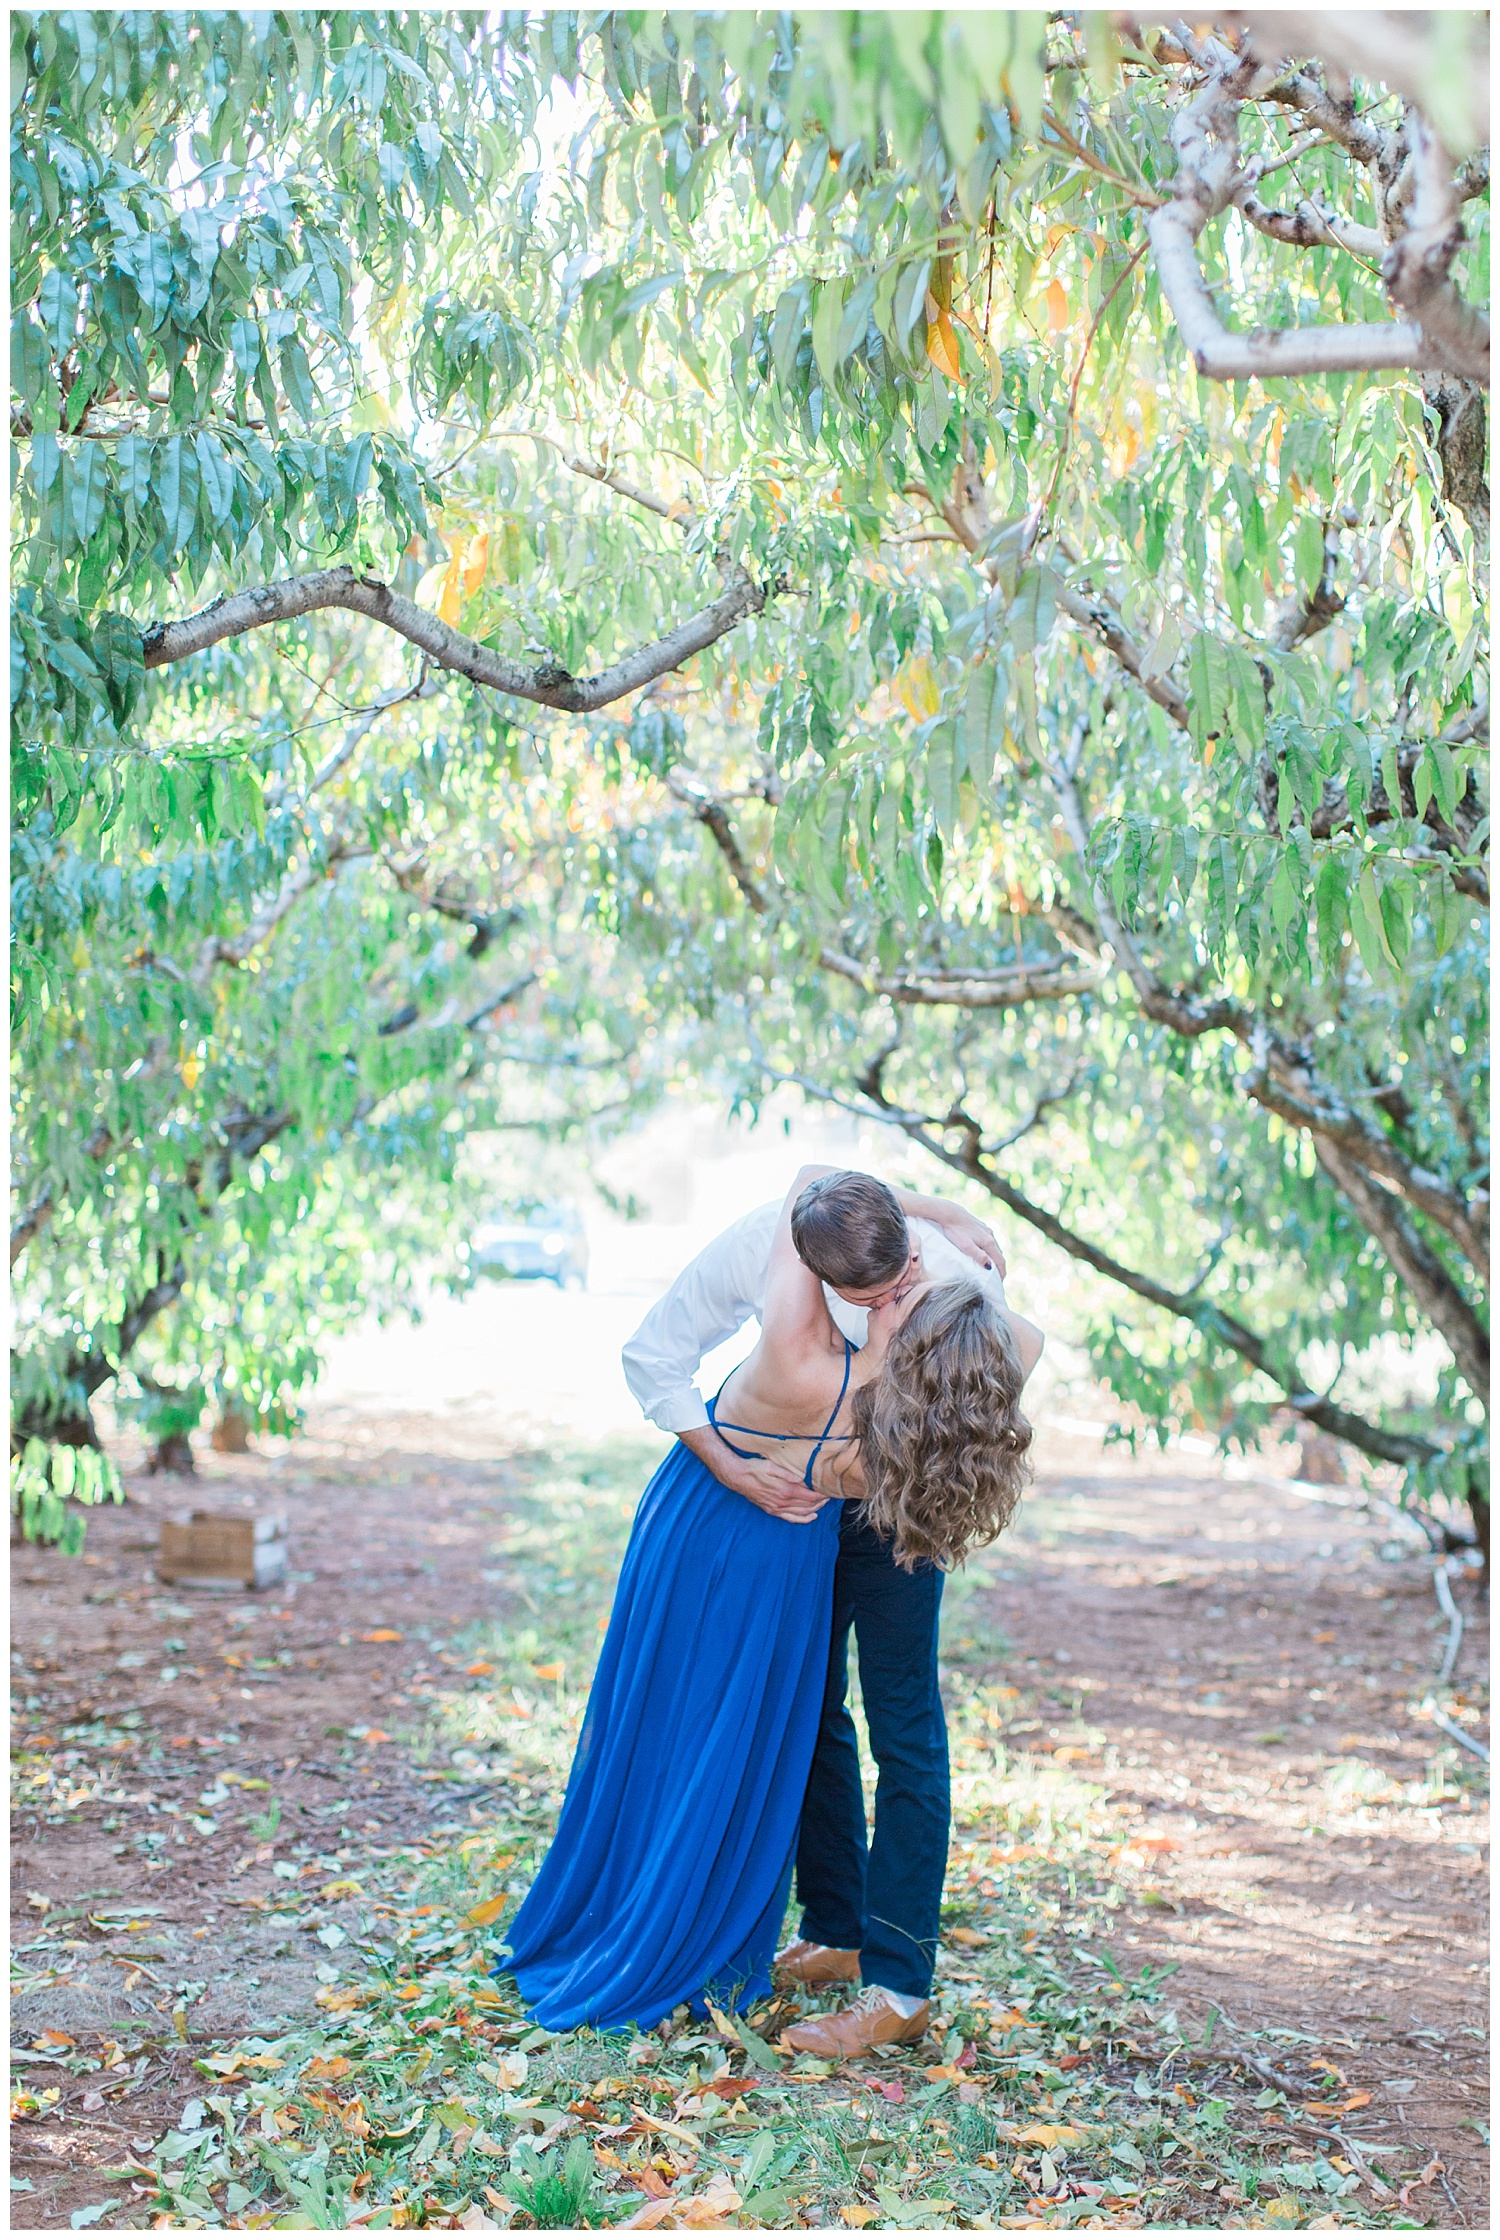 charlottesville_wedding_photographer_chiles_peach_orchard7.jpg